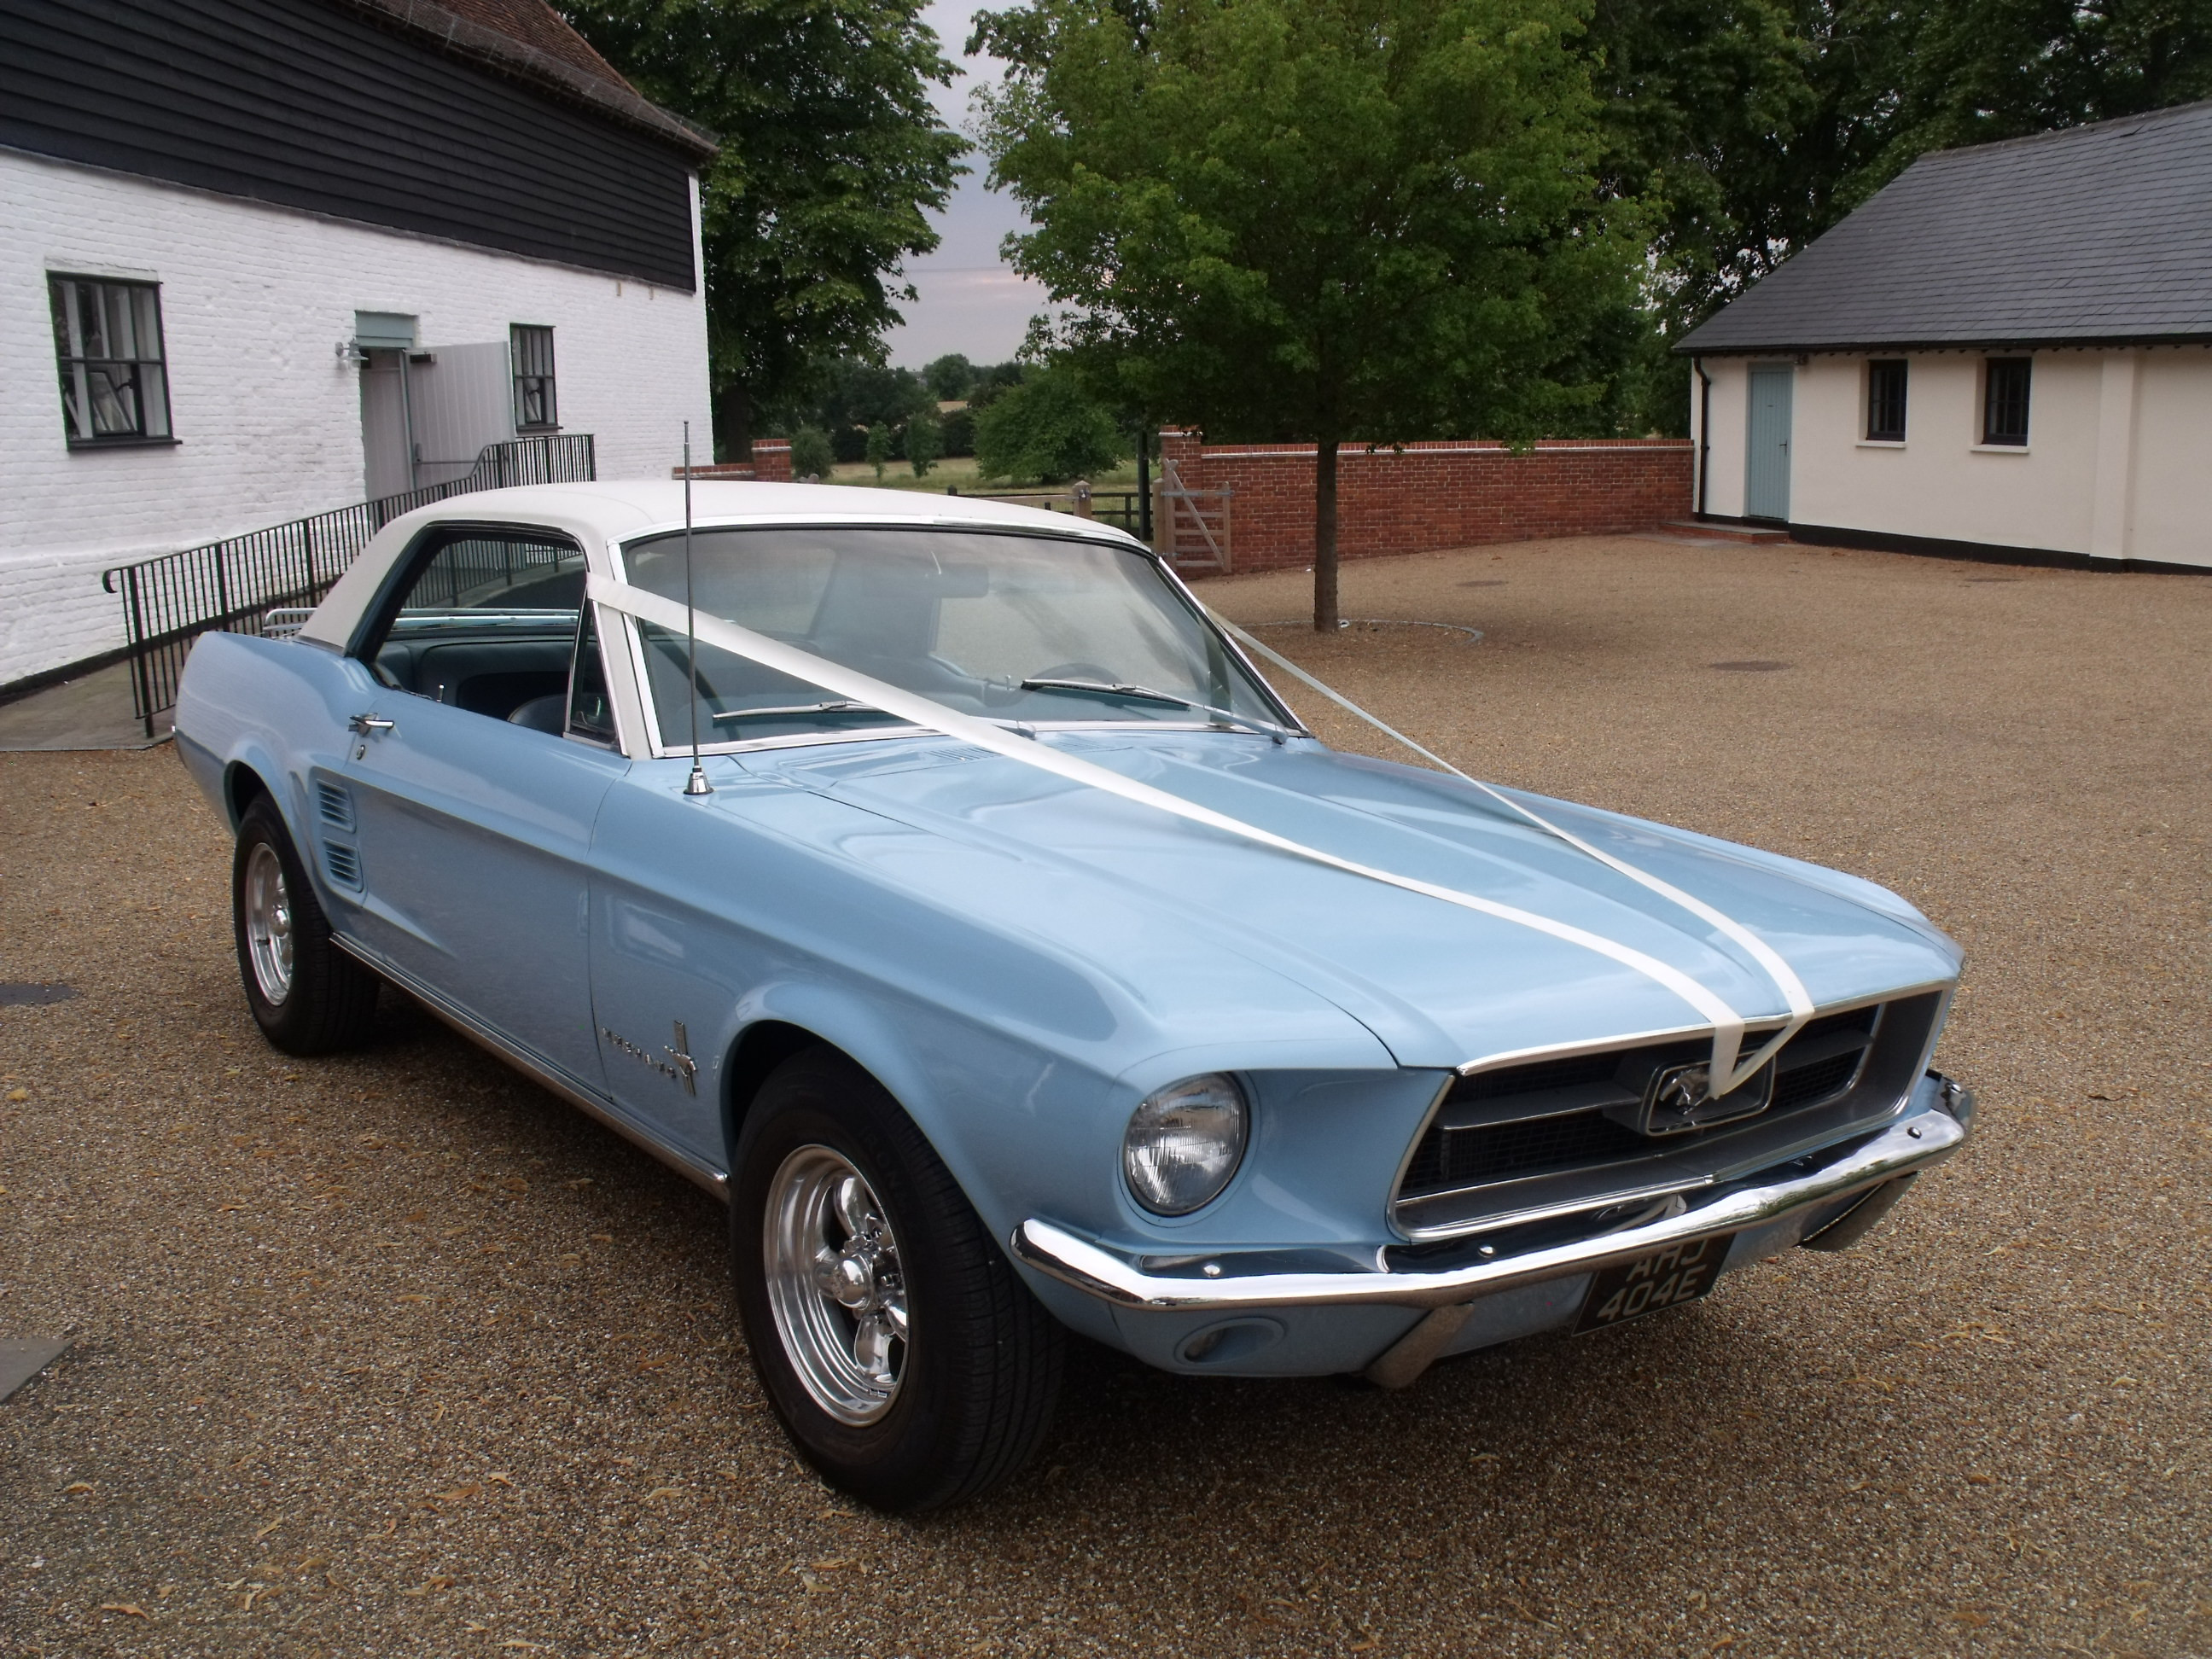 Ford Mustang Hire Royston